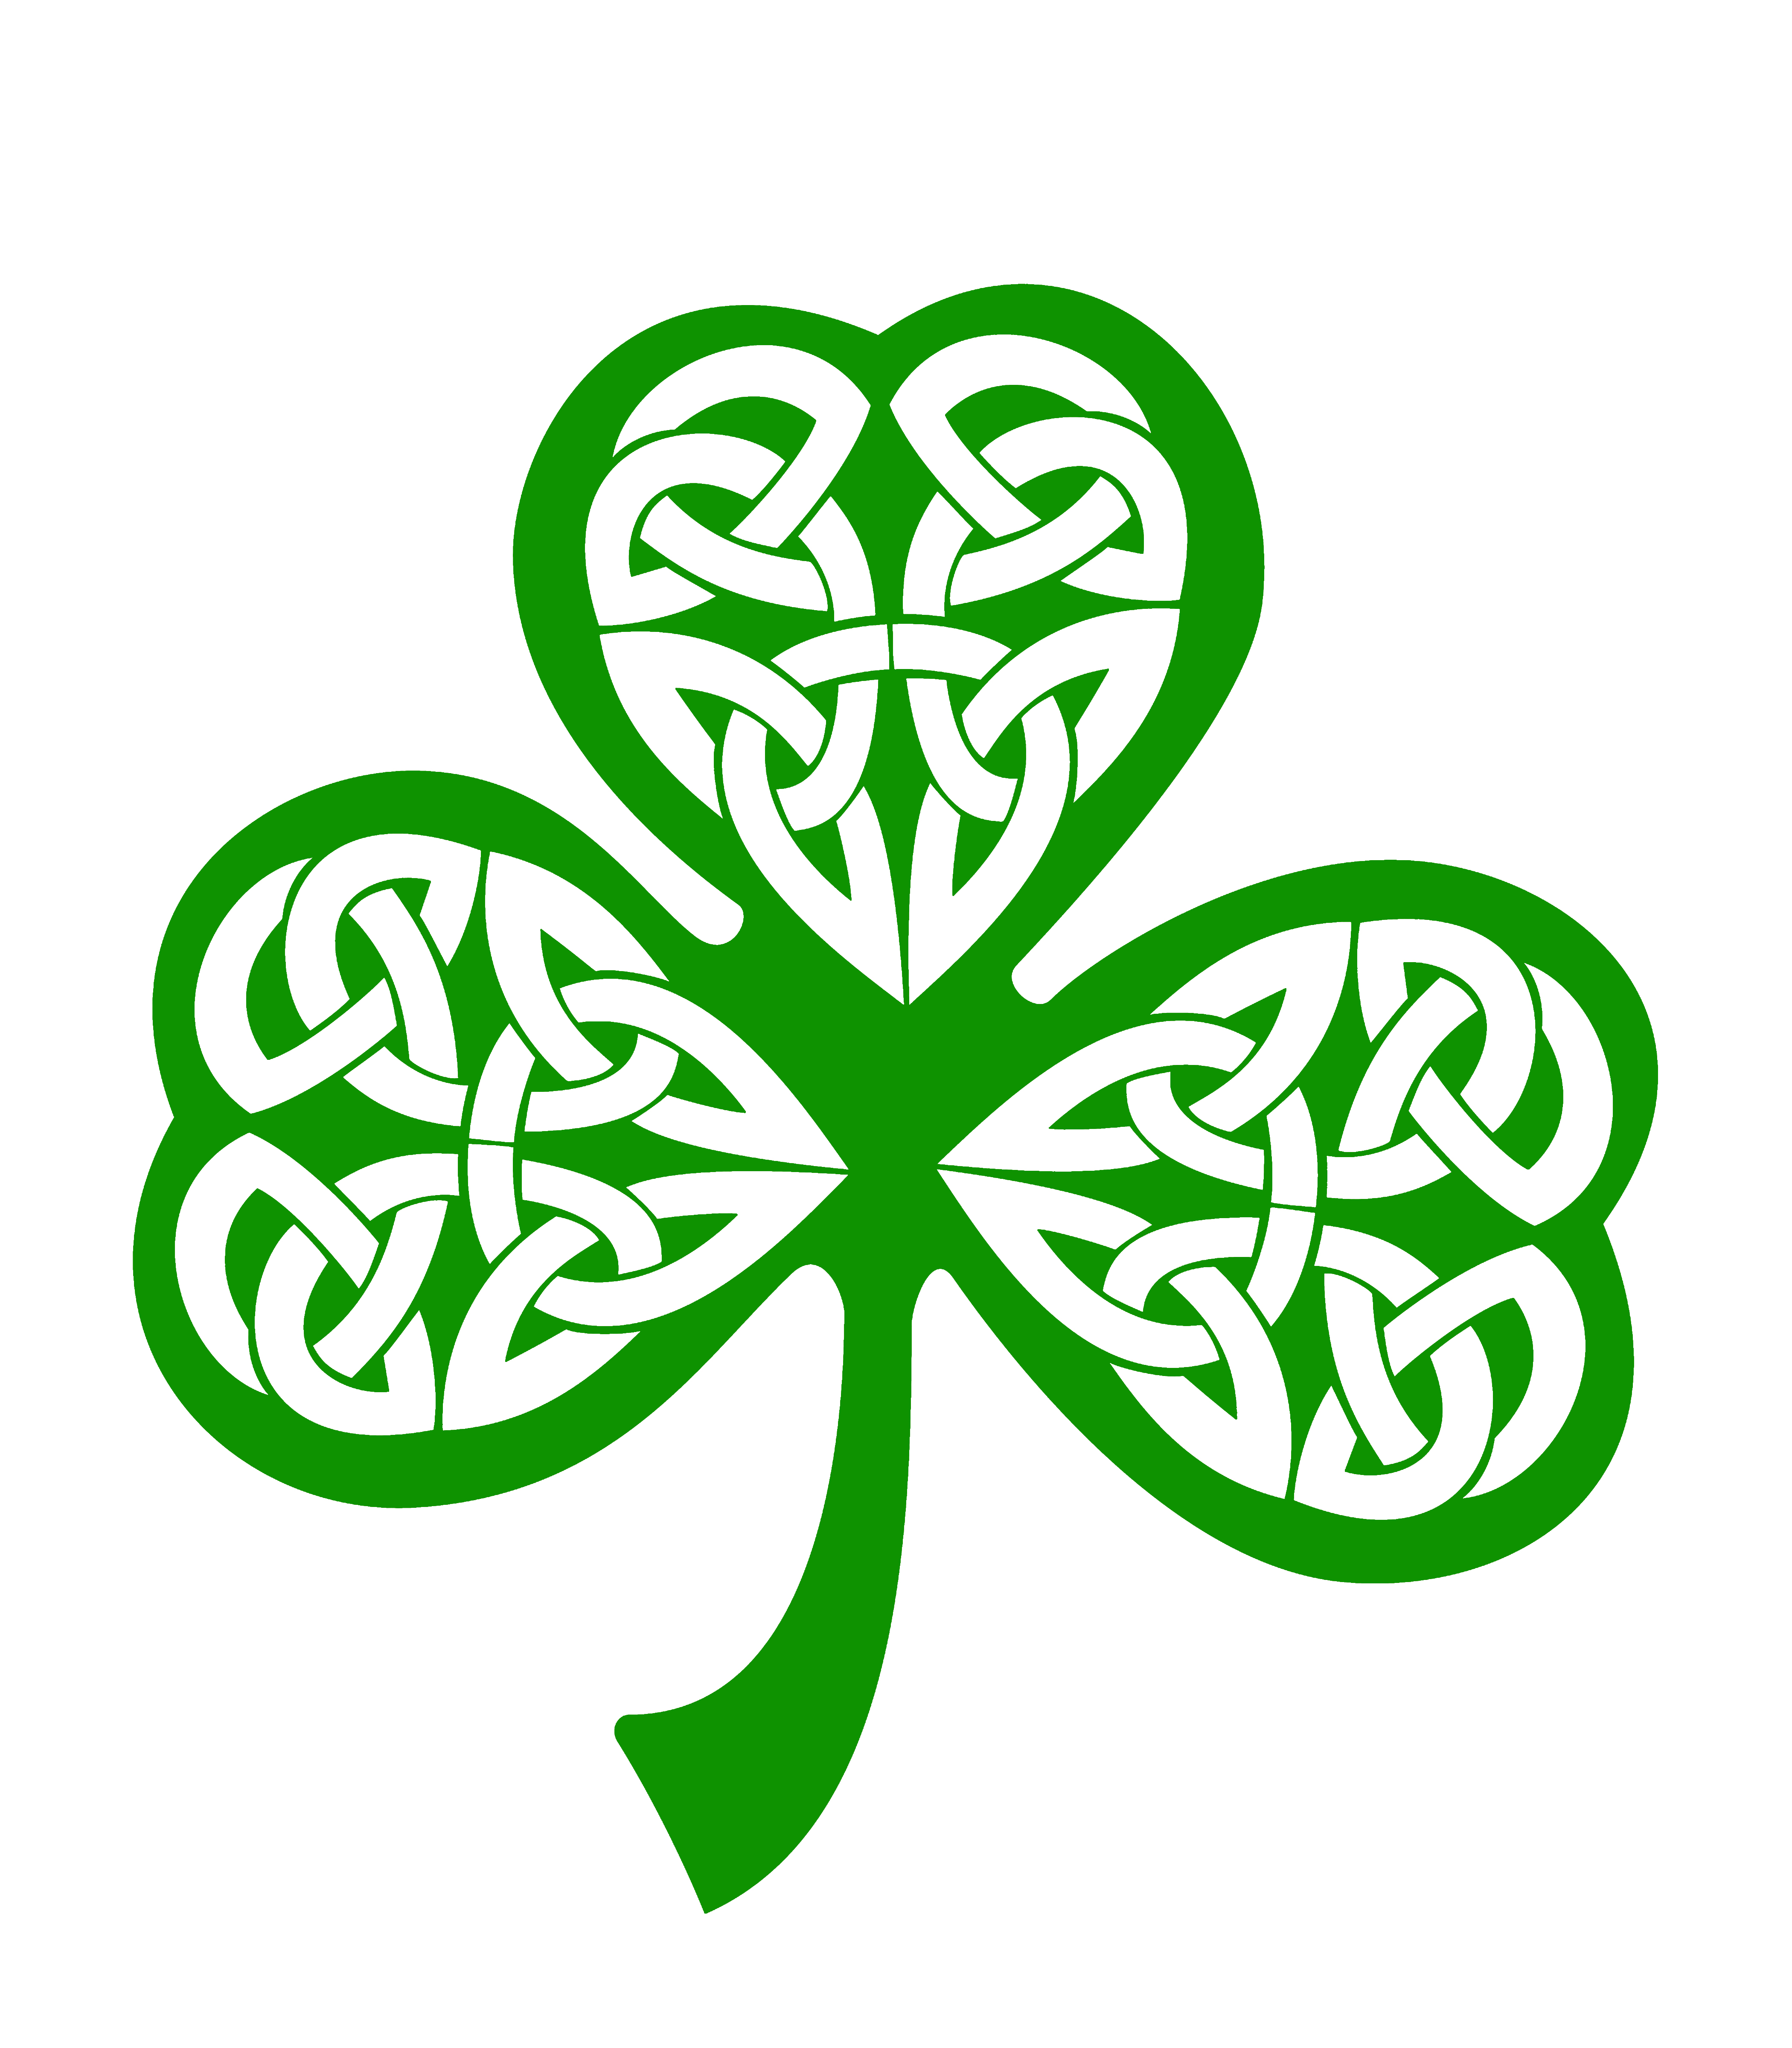 Irish Shamrocks Iphone Wallpaper Background And   Clipart Best